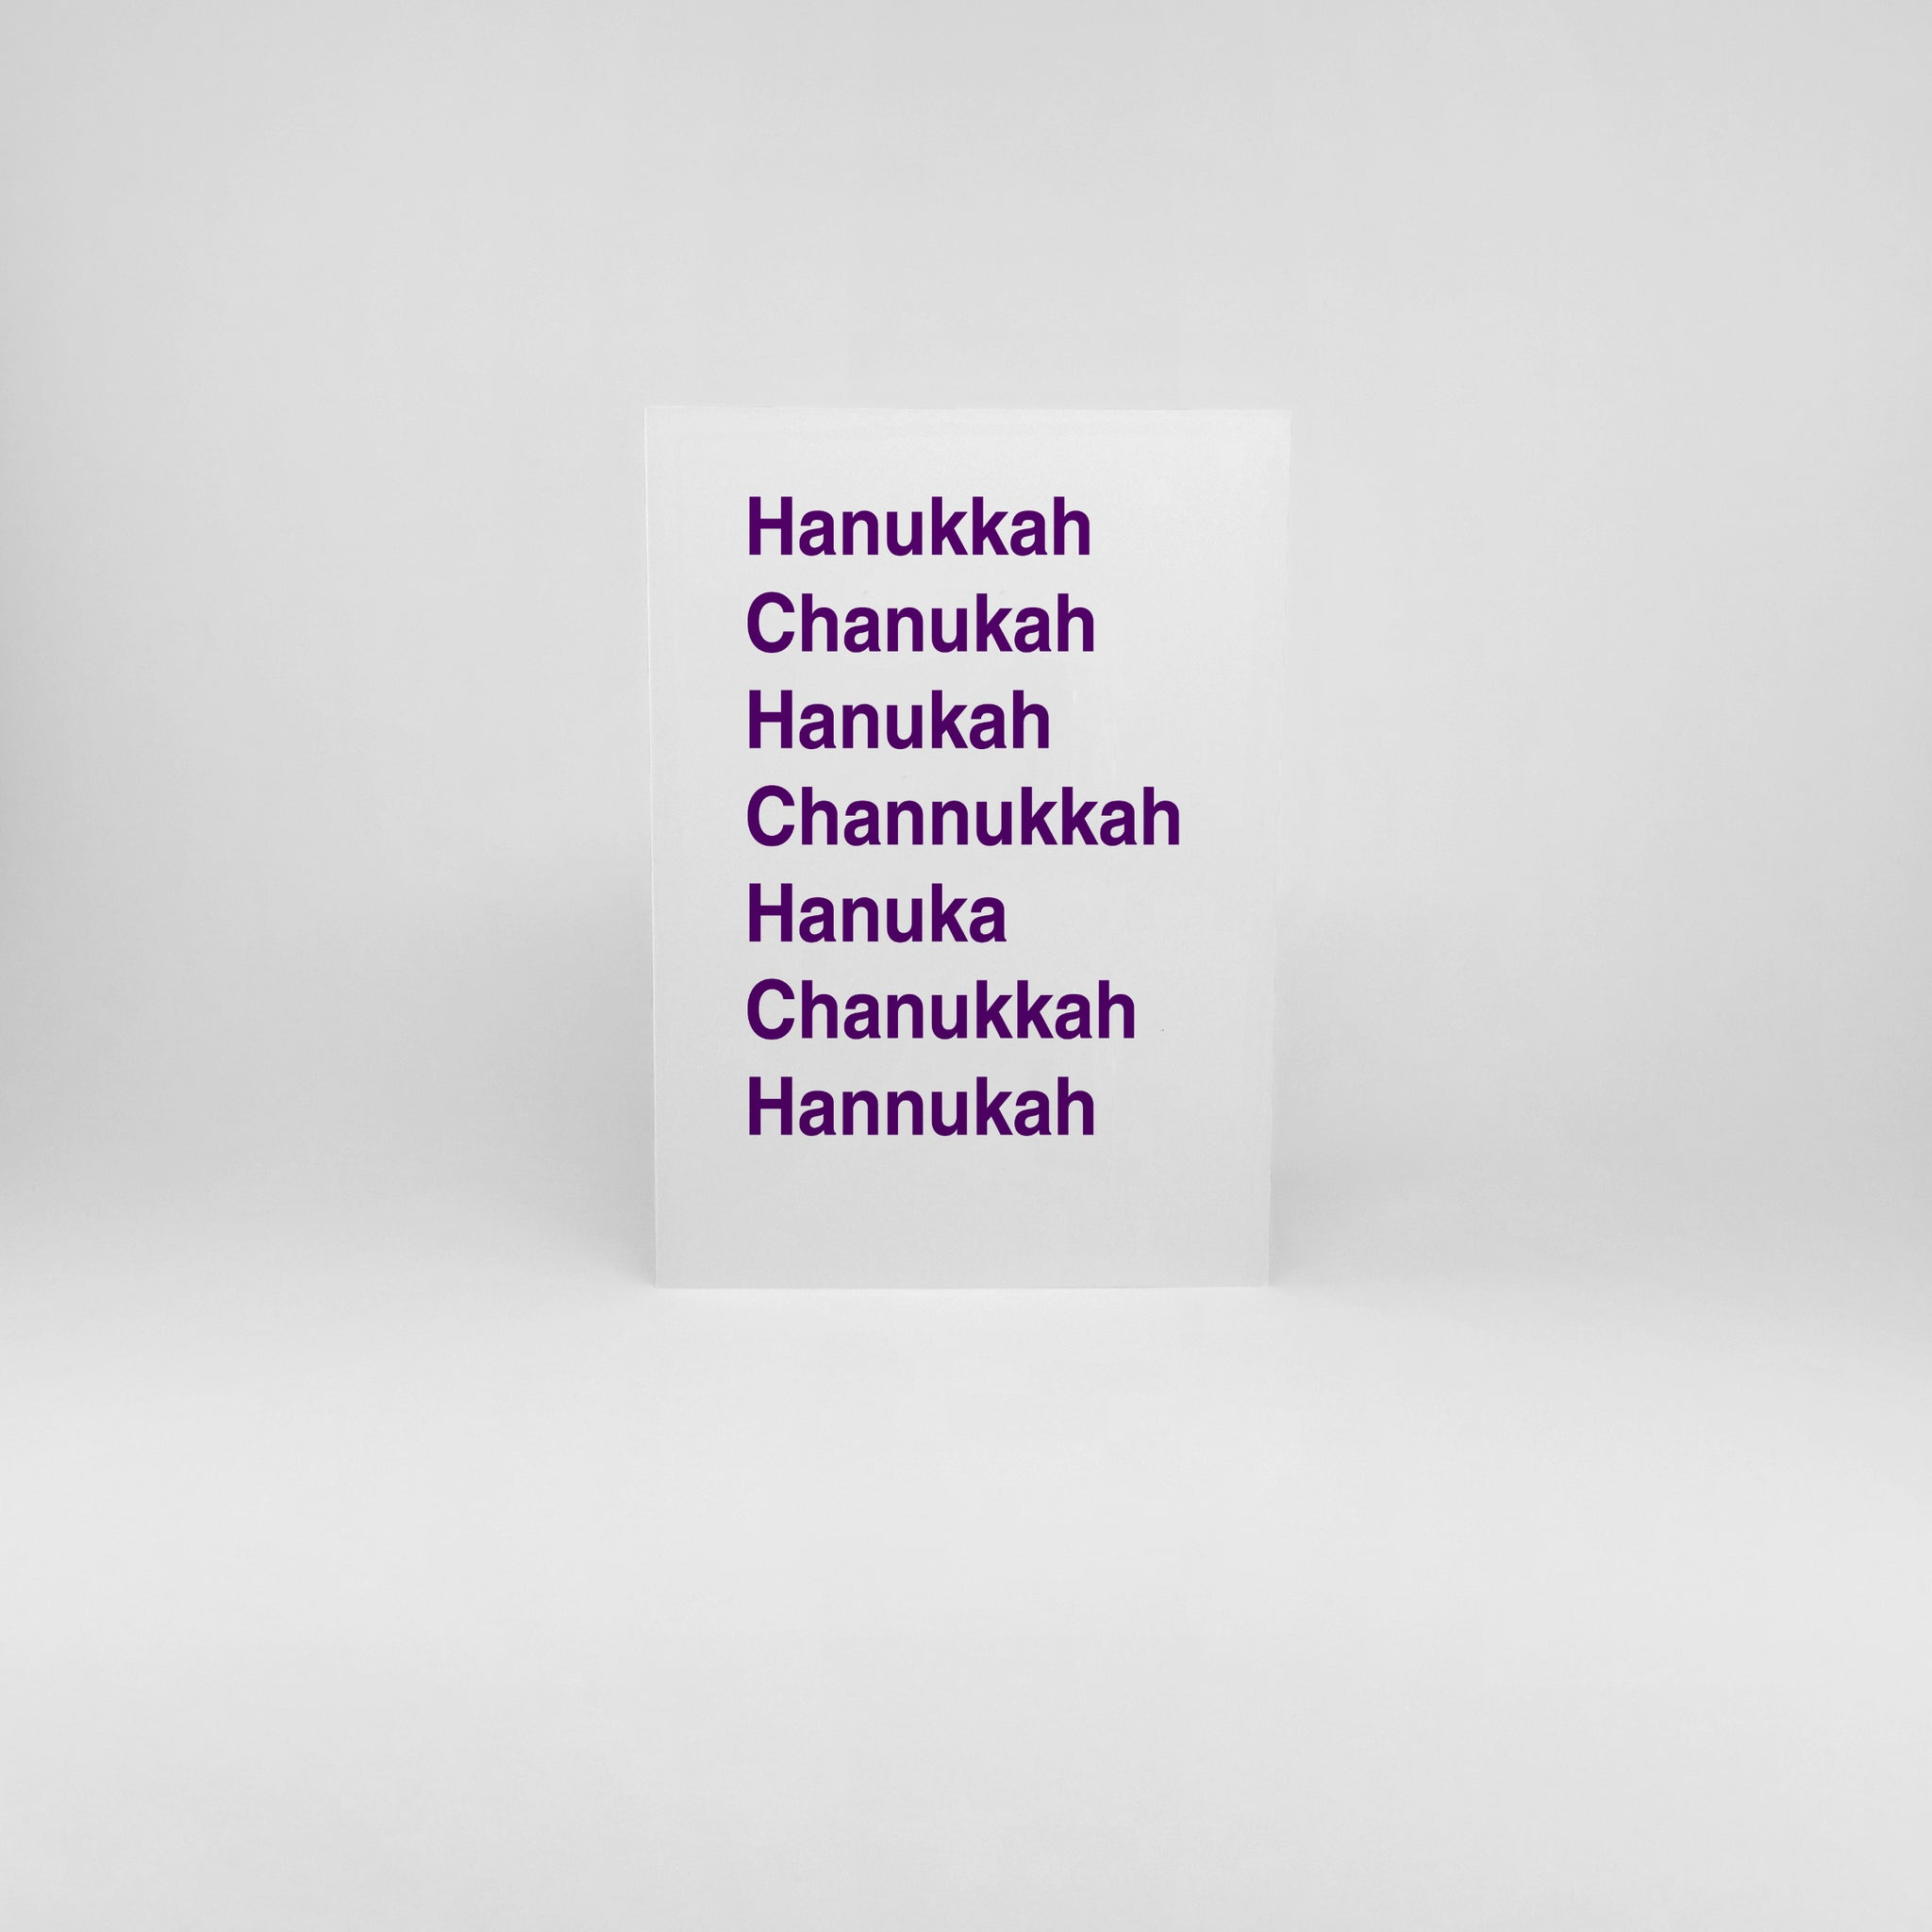 Ways to Say Chanukkah